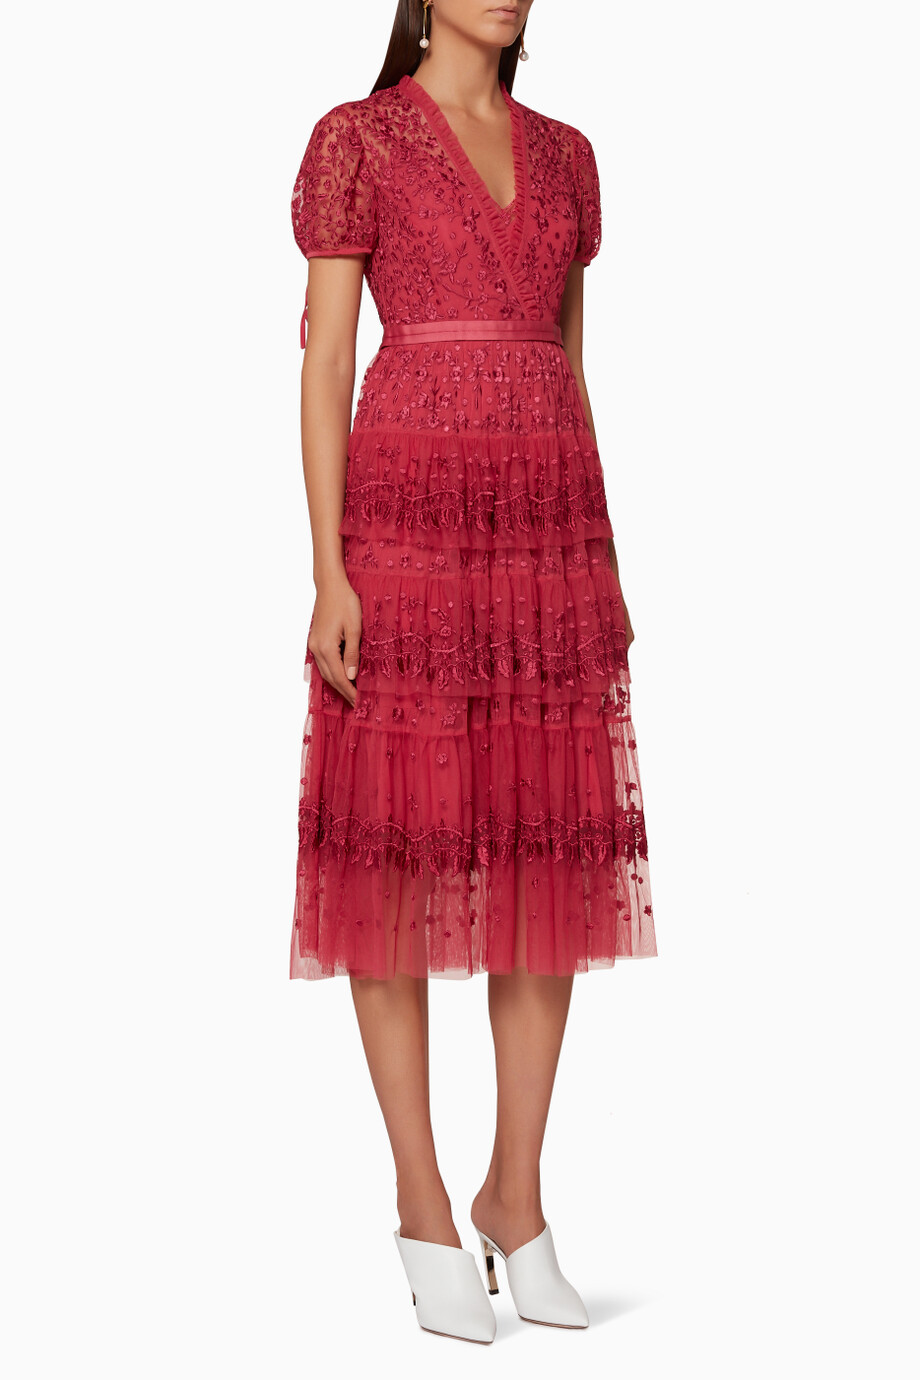 Shop Needle Thread Burgundy Heather Red Layered Lace Dress